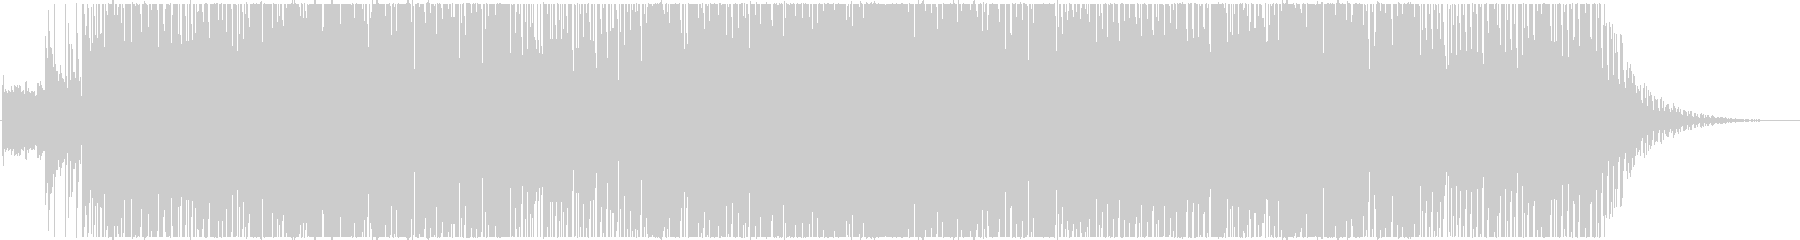 Medium Tempo Rock (English)'s unreproduced waveform